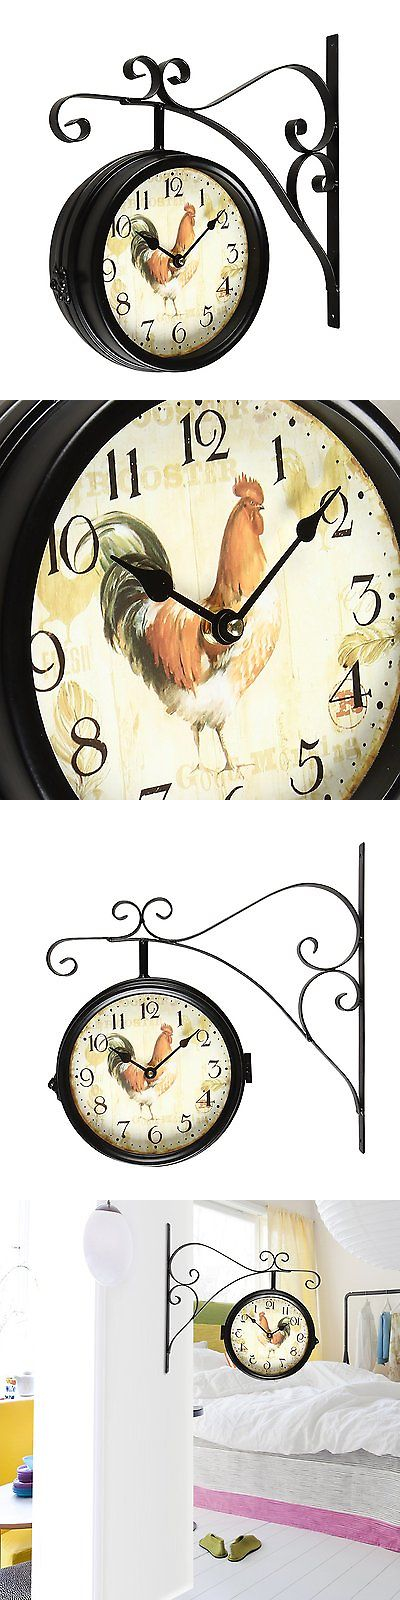 wall clocks adeco doublesided decorative rooster round iron wall